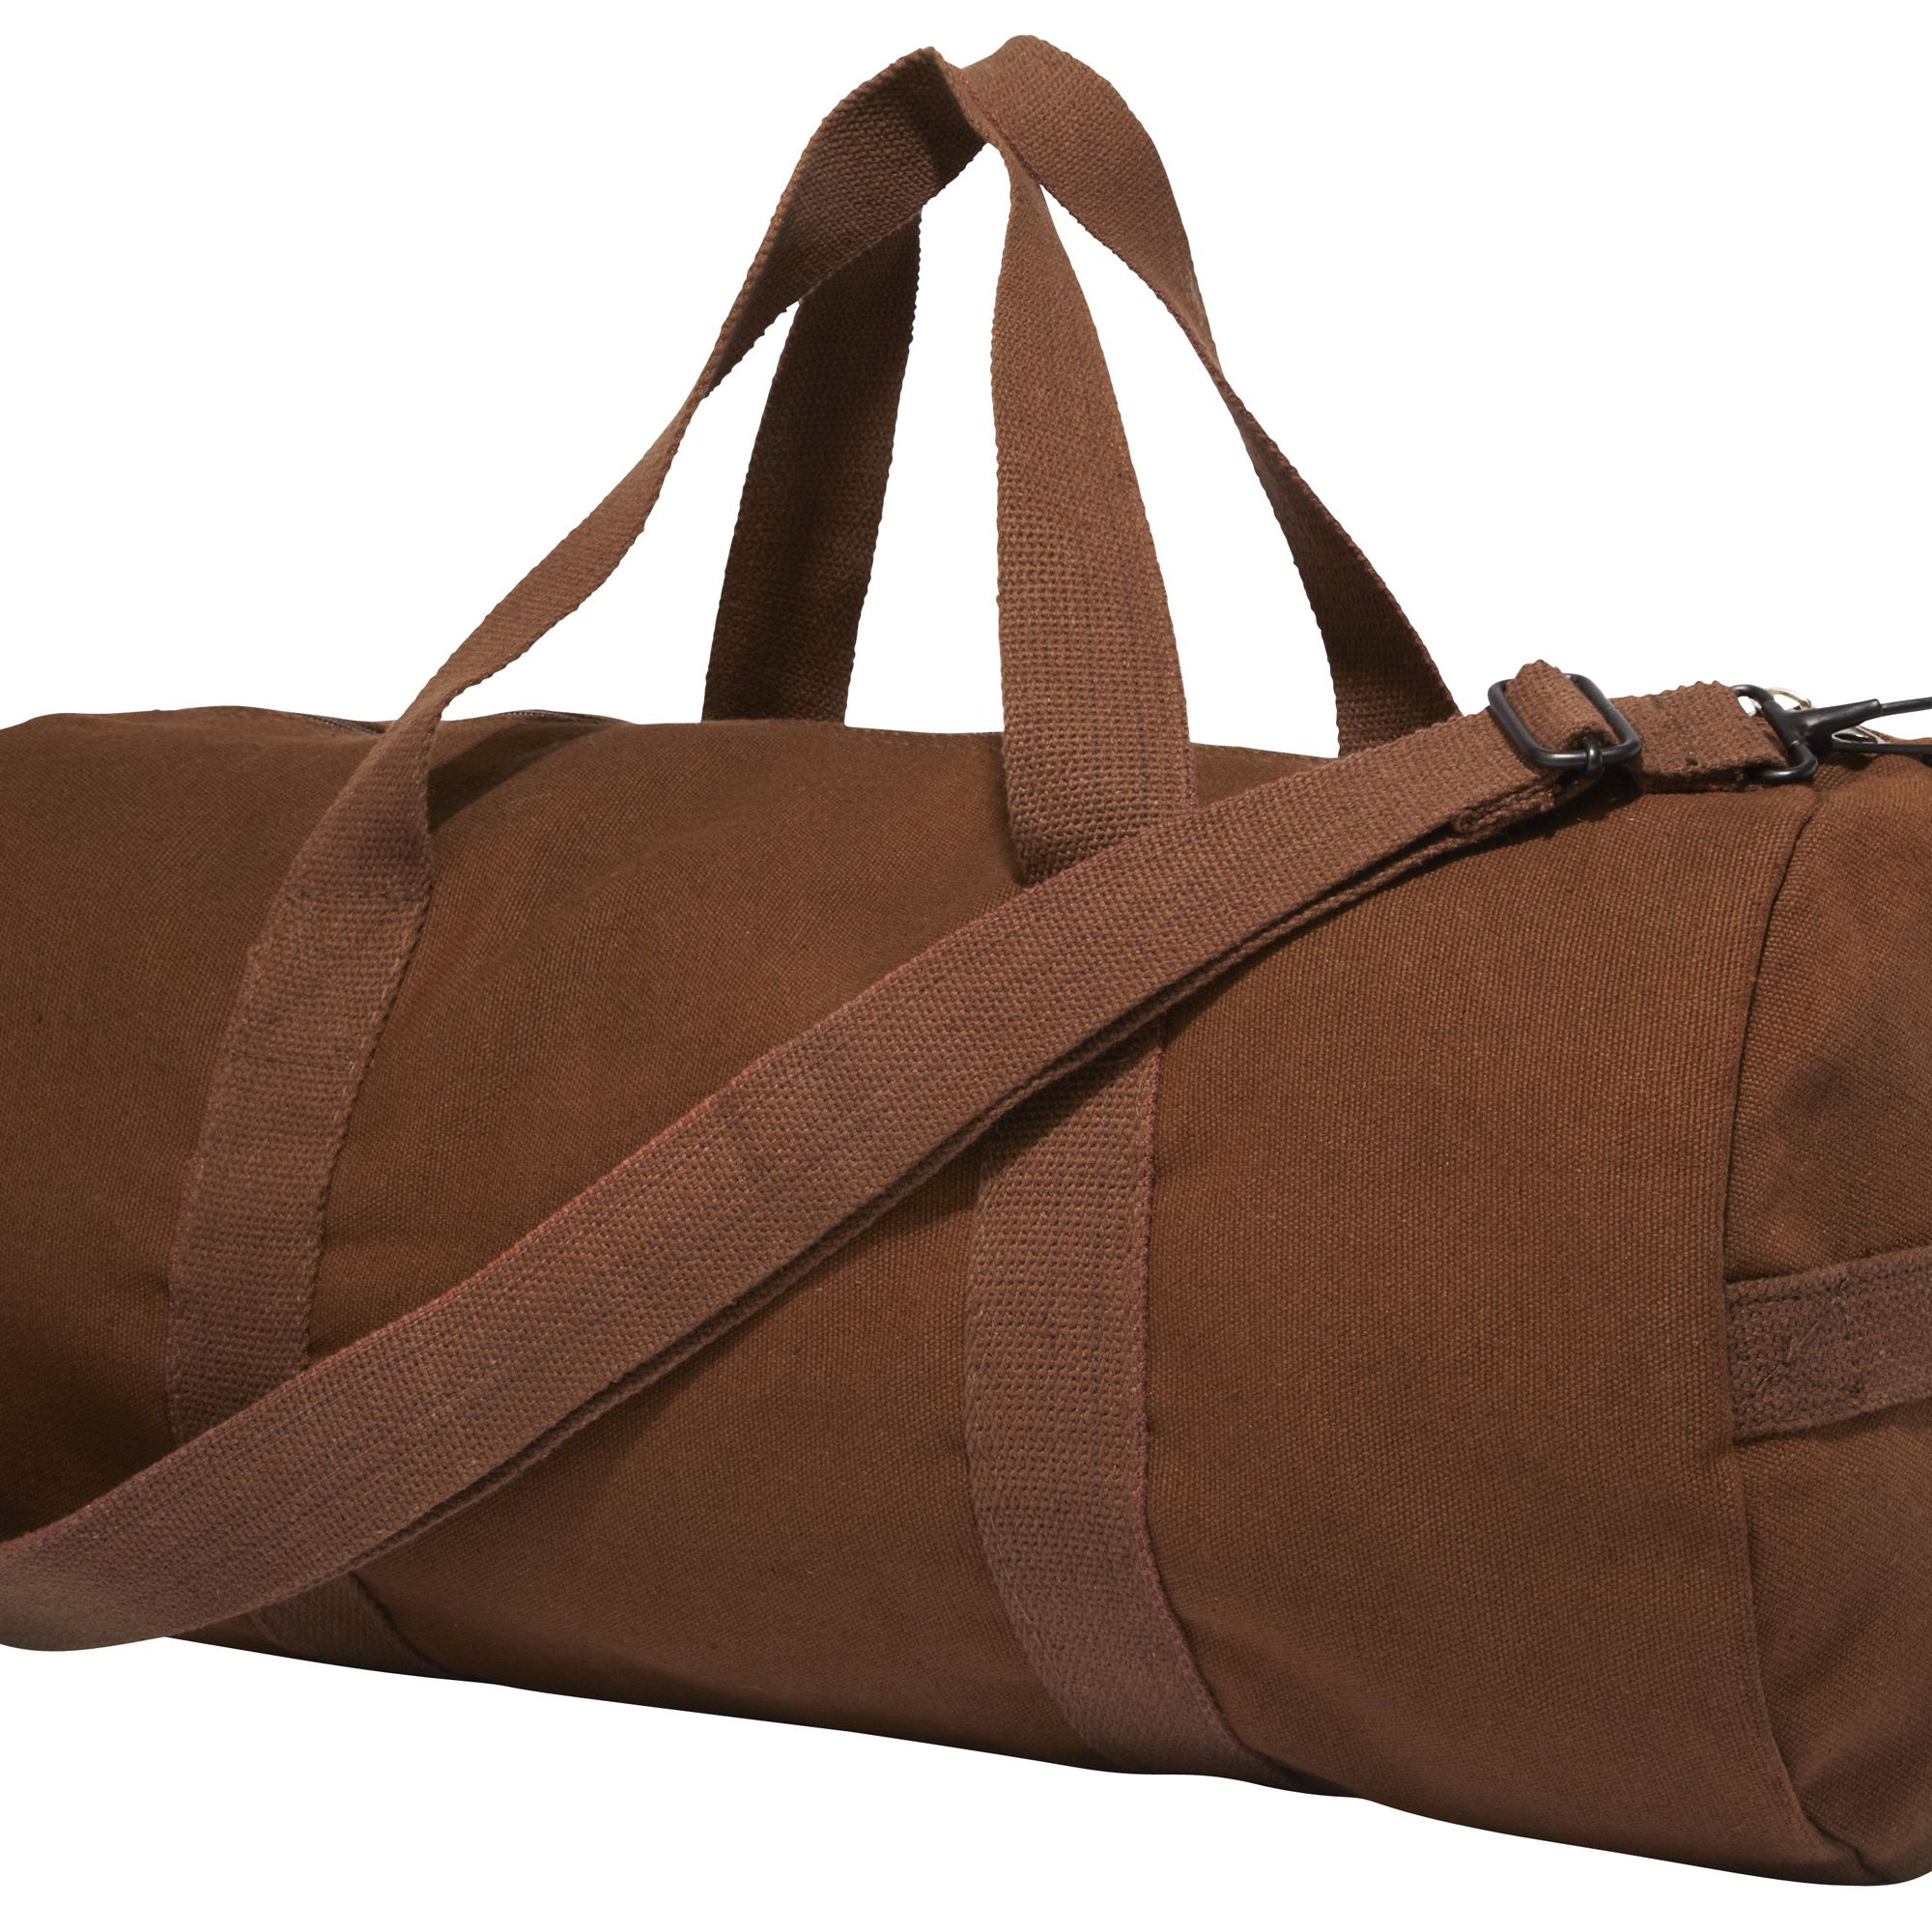 """My army surplus duffel. I've had it forever.""